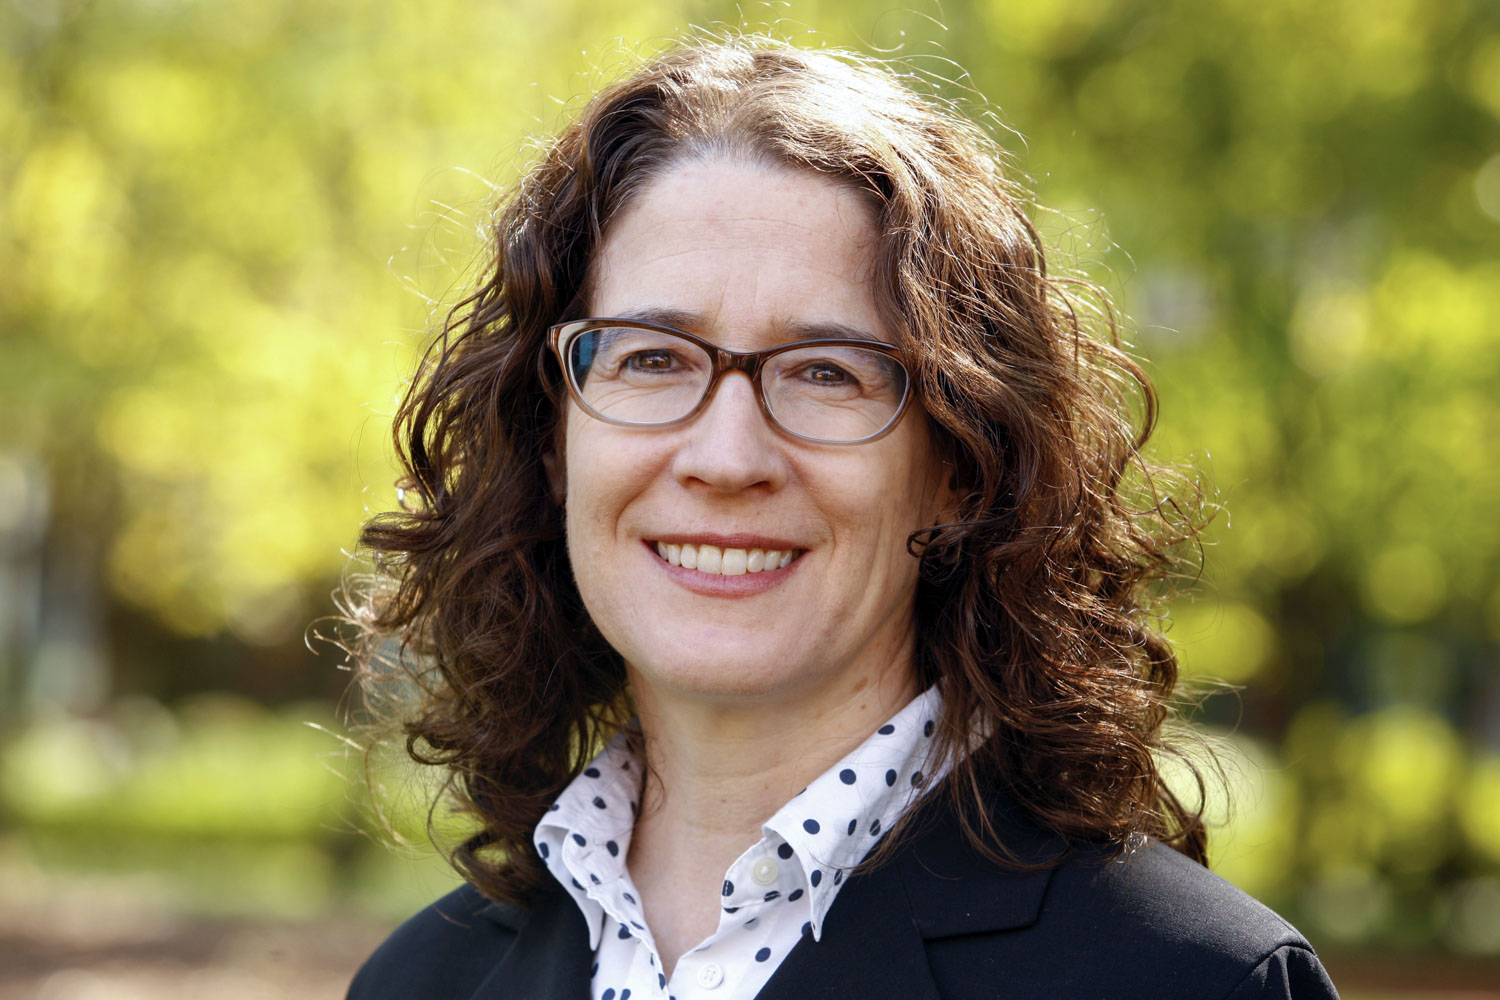 Law professor Deborah Hellman's scholarship focuses on discrimination and equality, and money and rights.